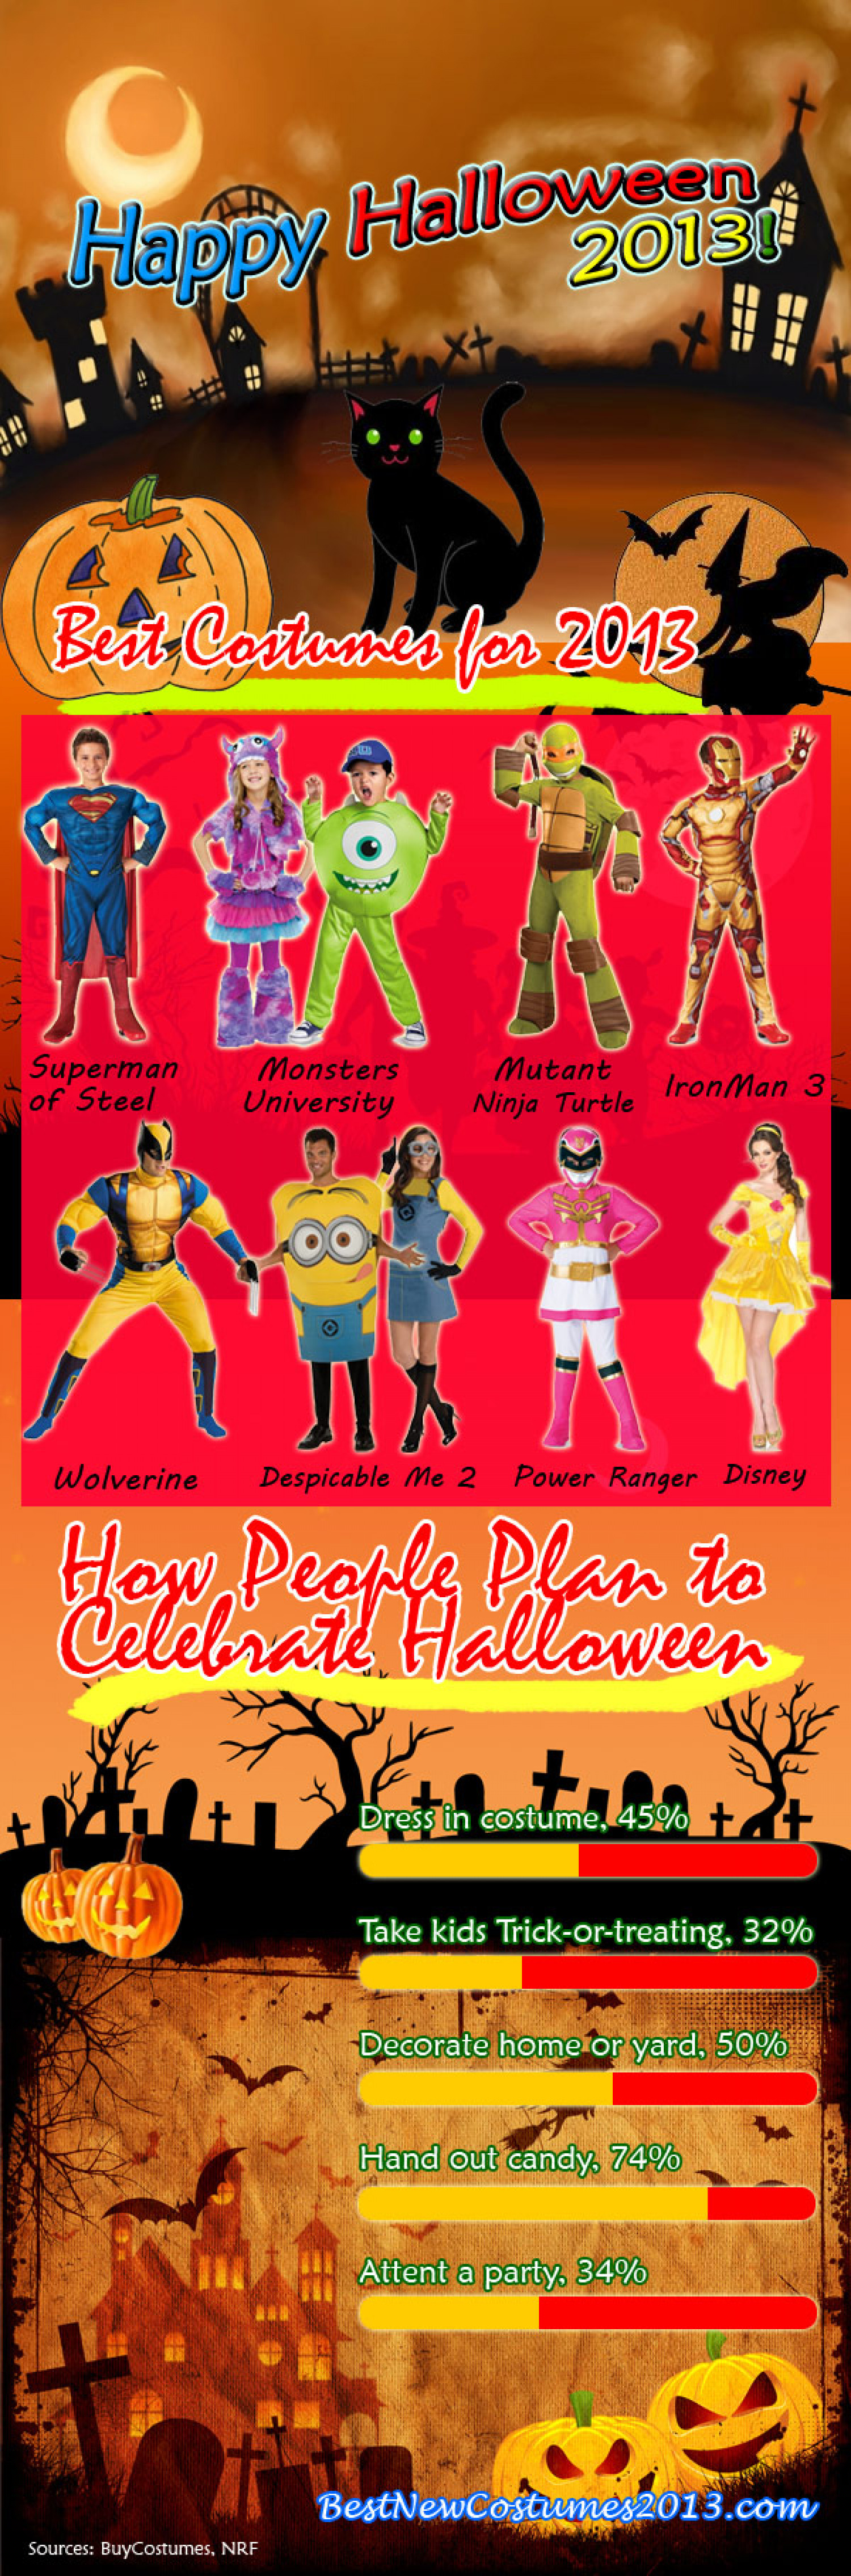 Happy Halloween 2013 Infographic